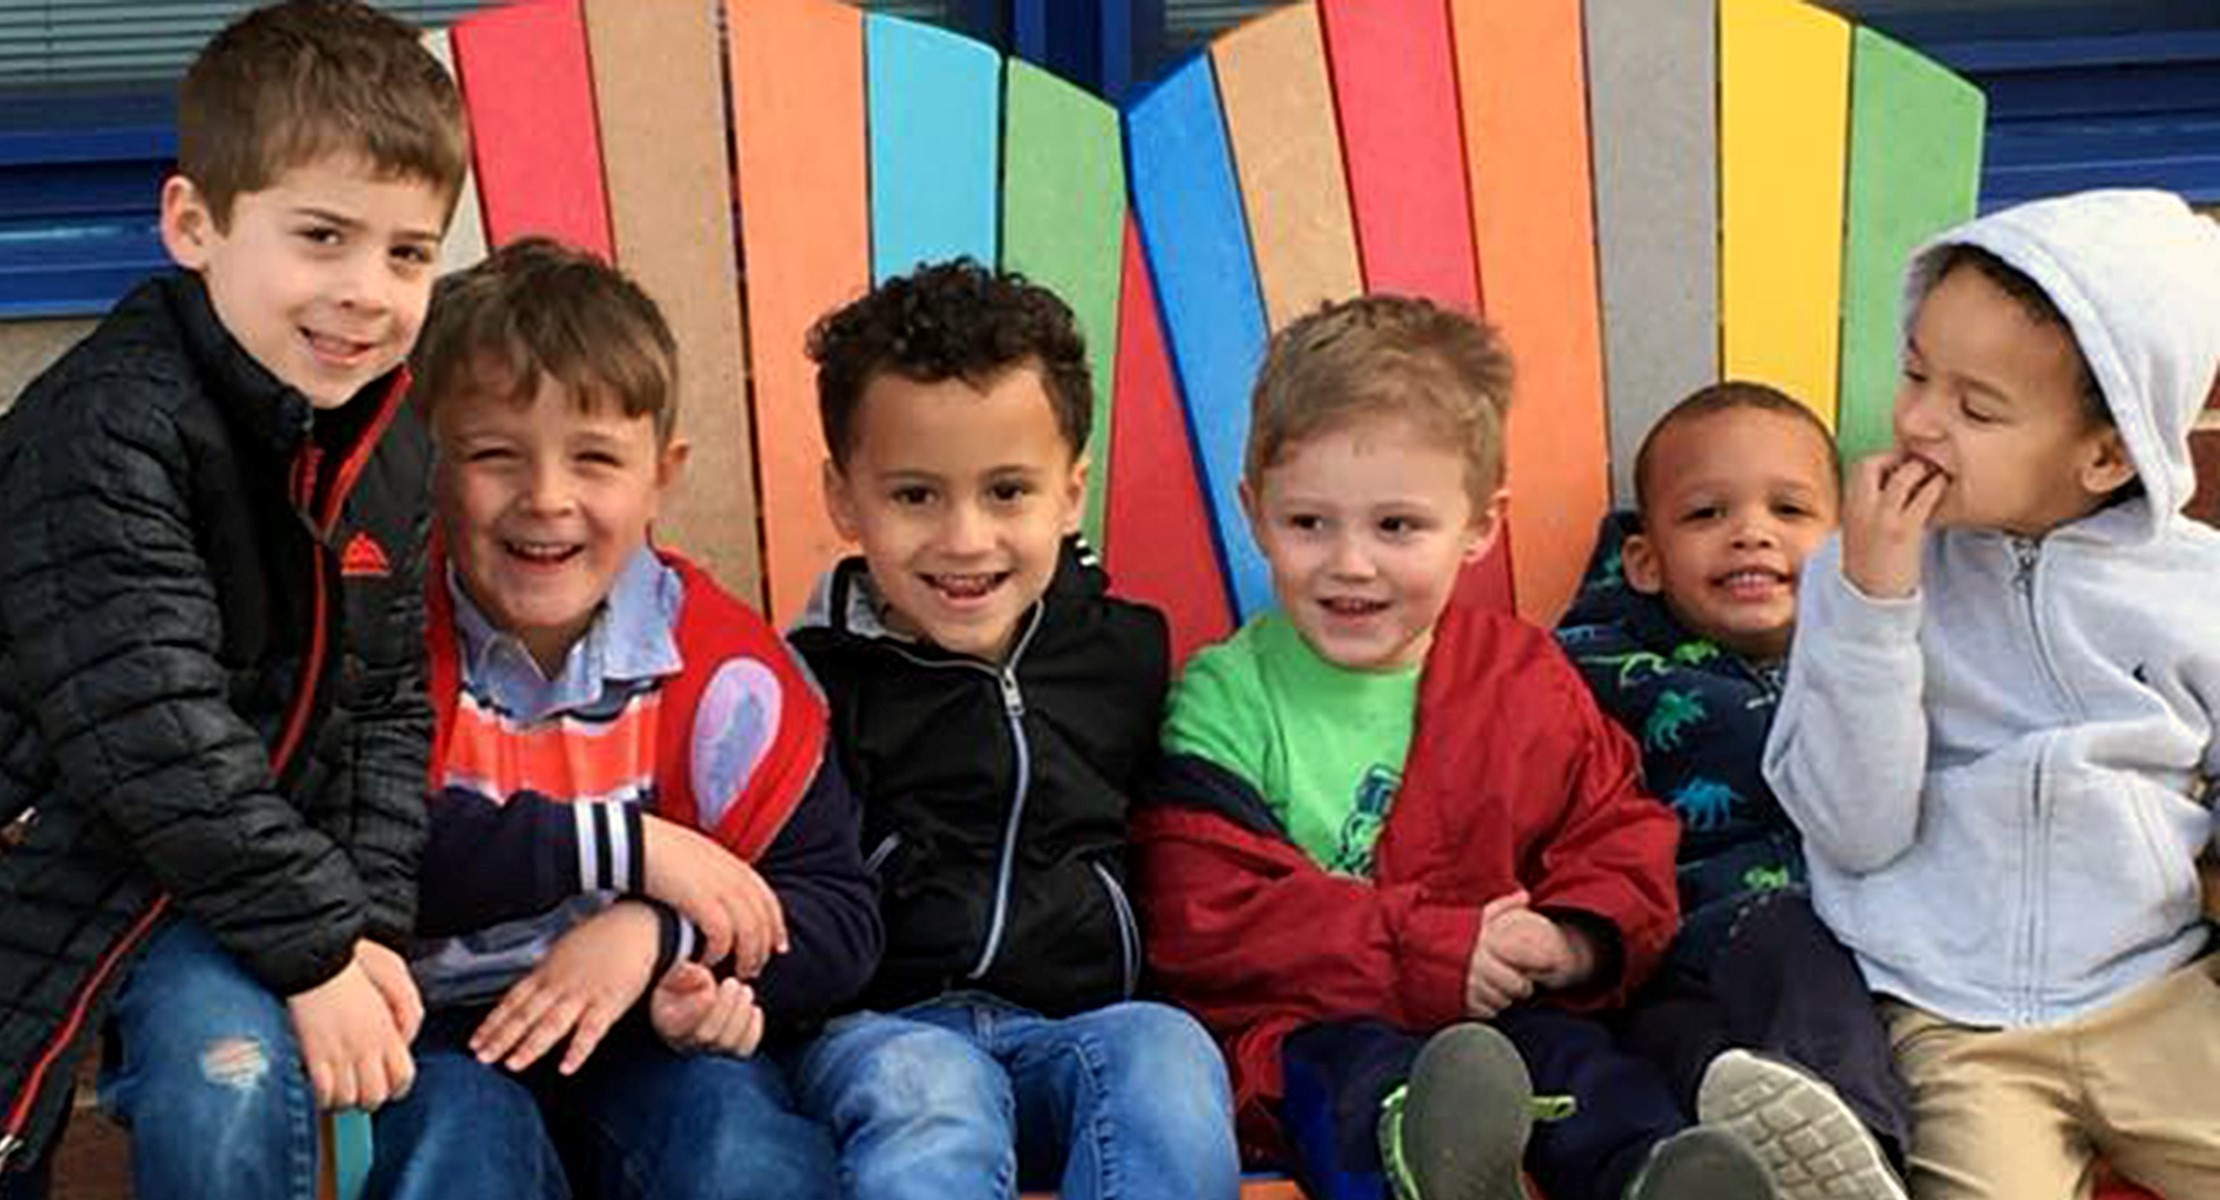 Young kids in colorful wooden chairs